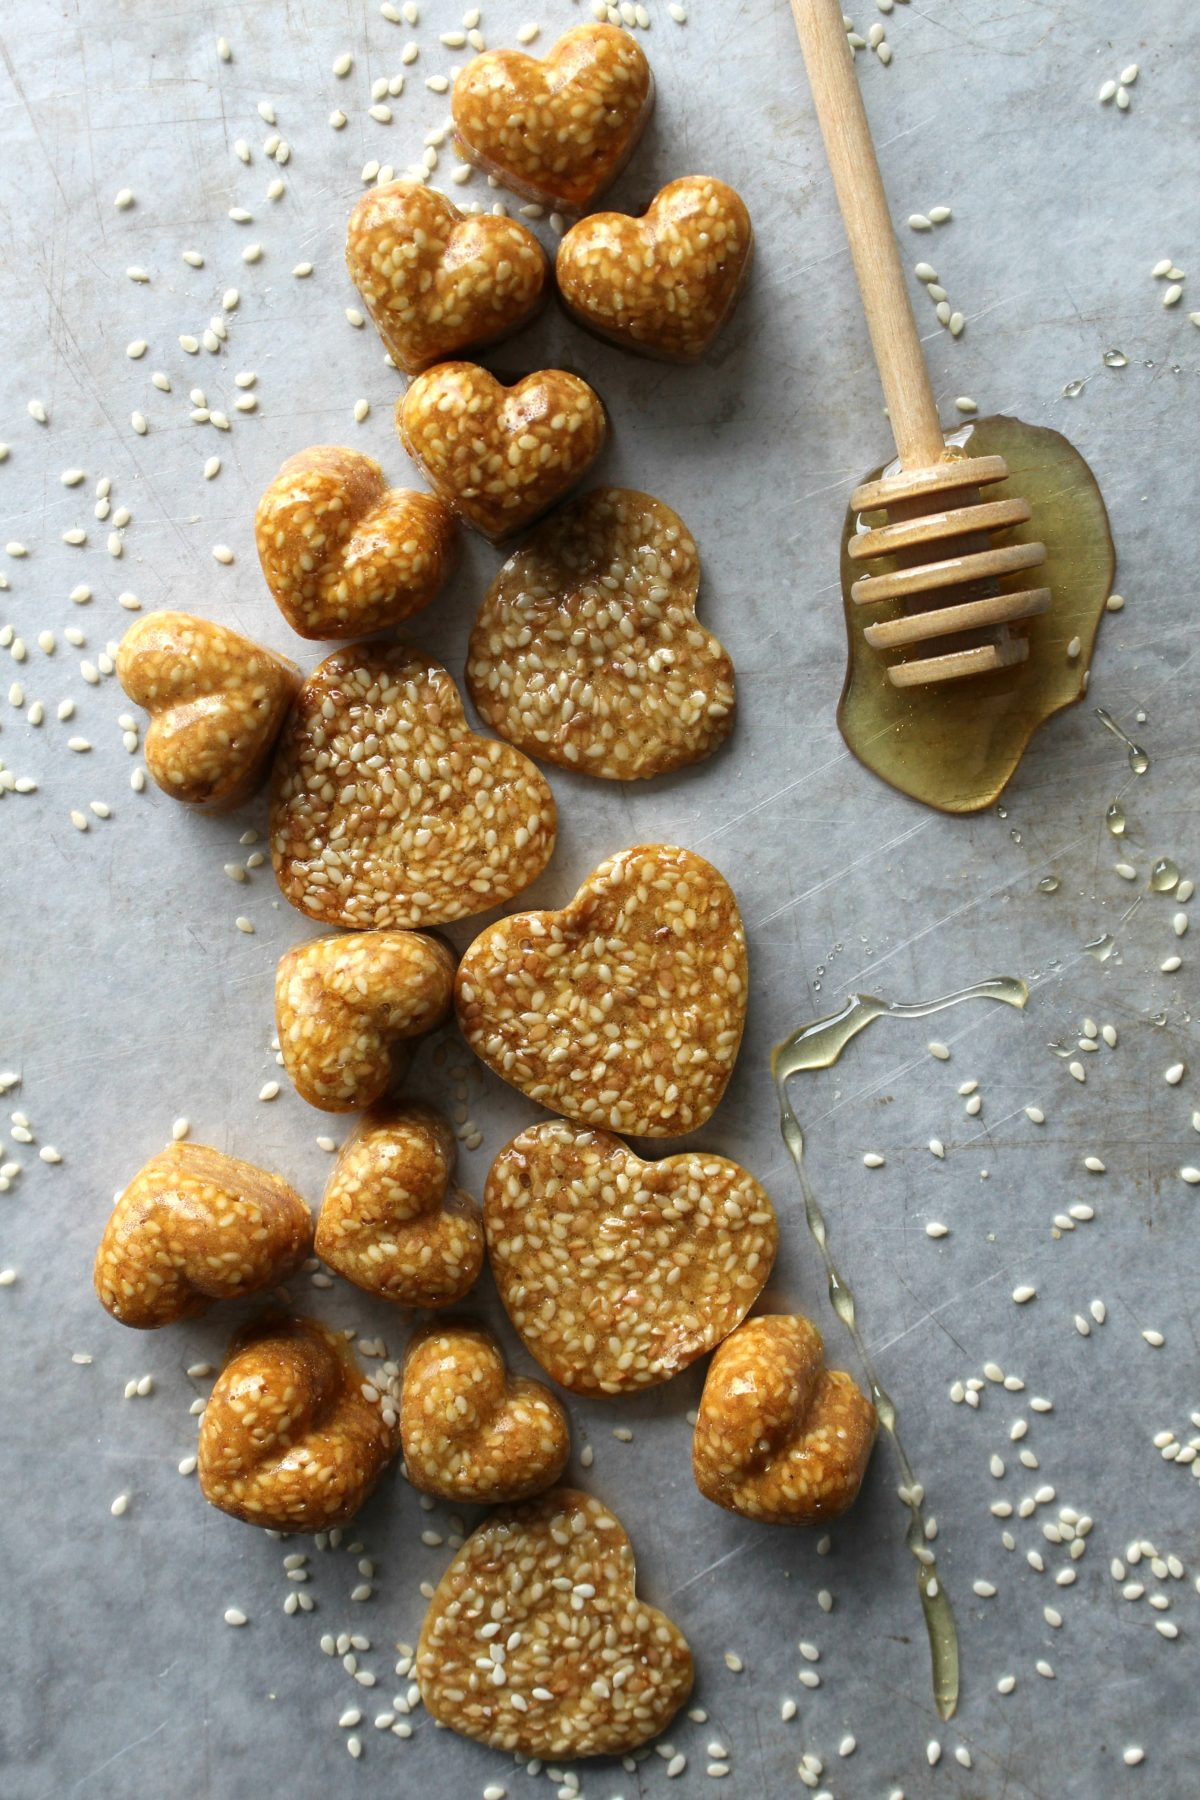 Heart shaped Honey Sesame Brittle candies on a gray background sprinkled with sesame seeds and honey.